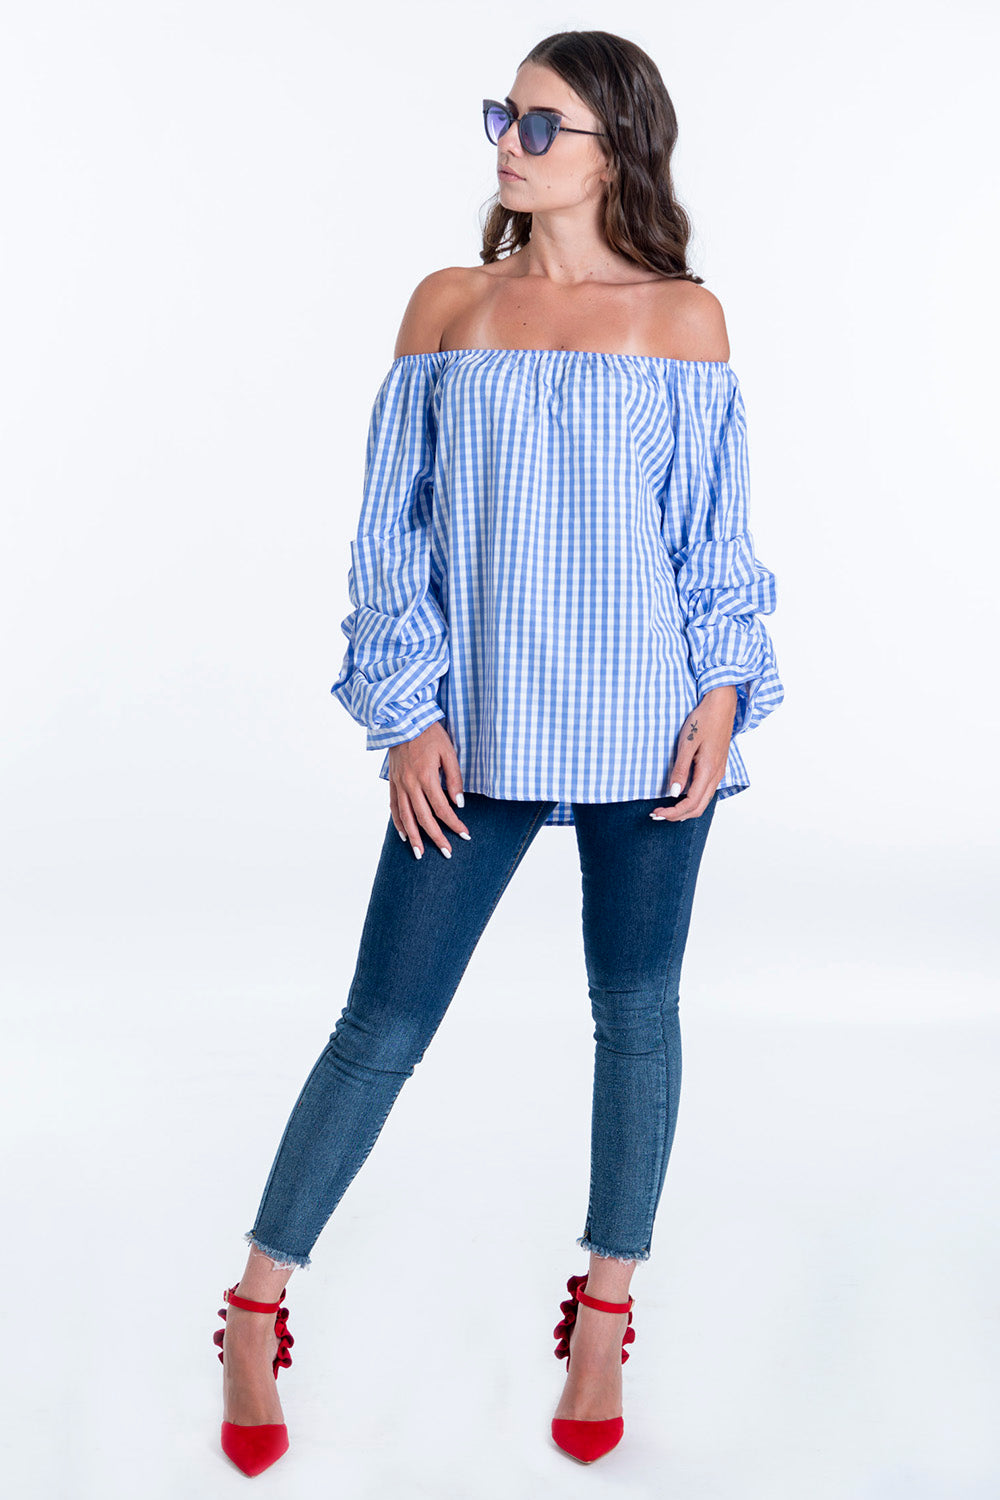 Eiki bardot top with ruched 3/4 sleeves in check print